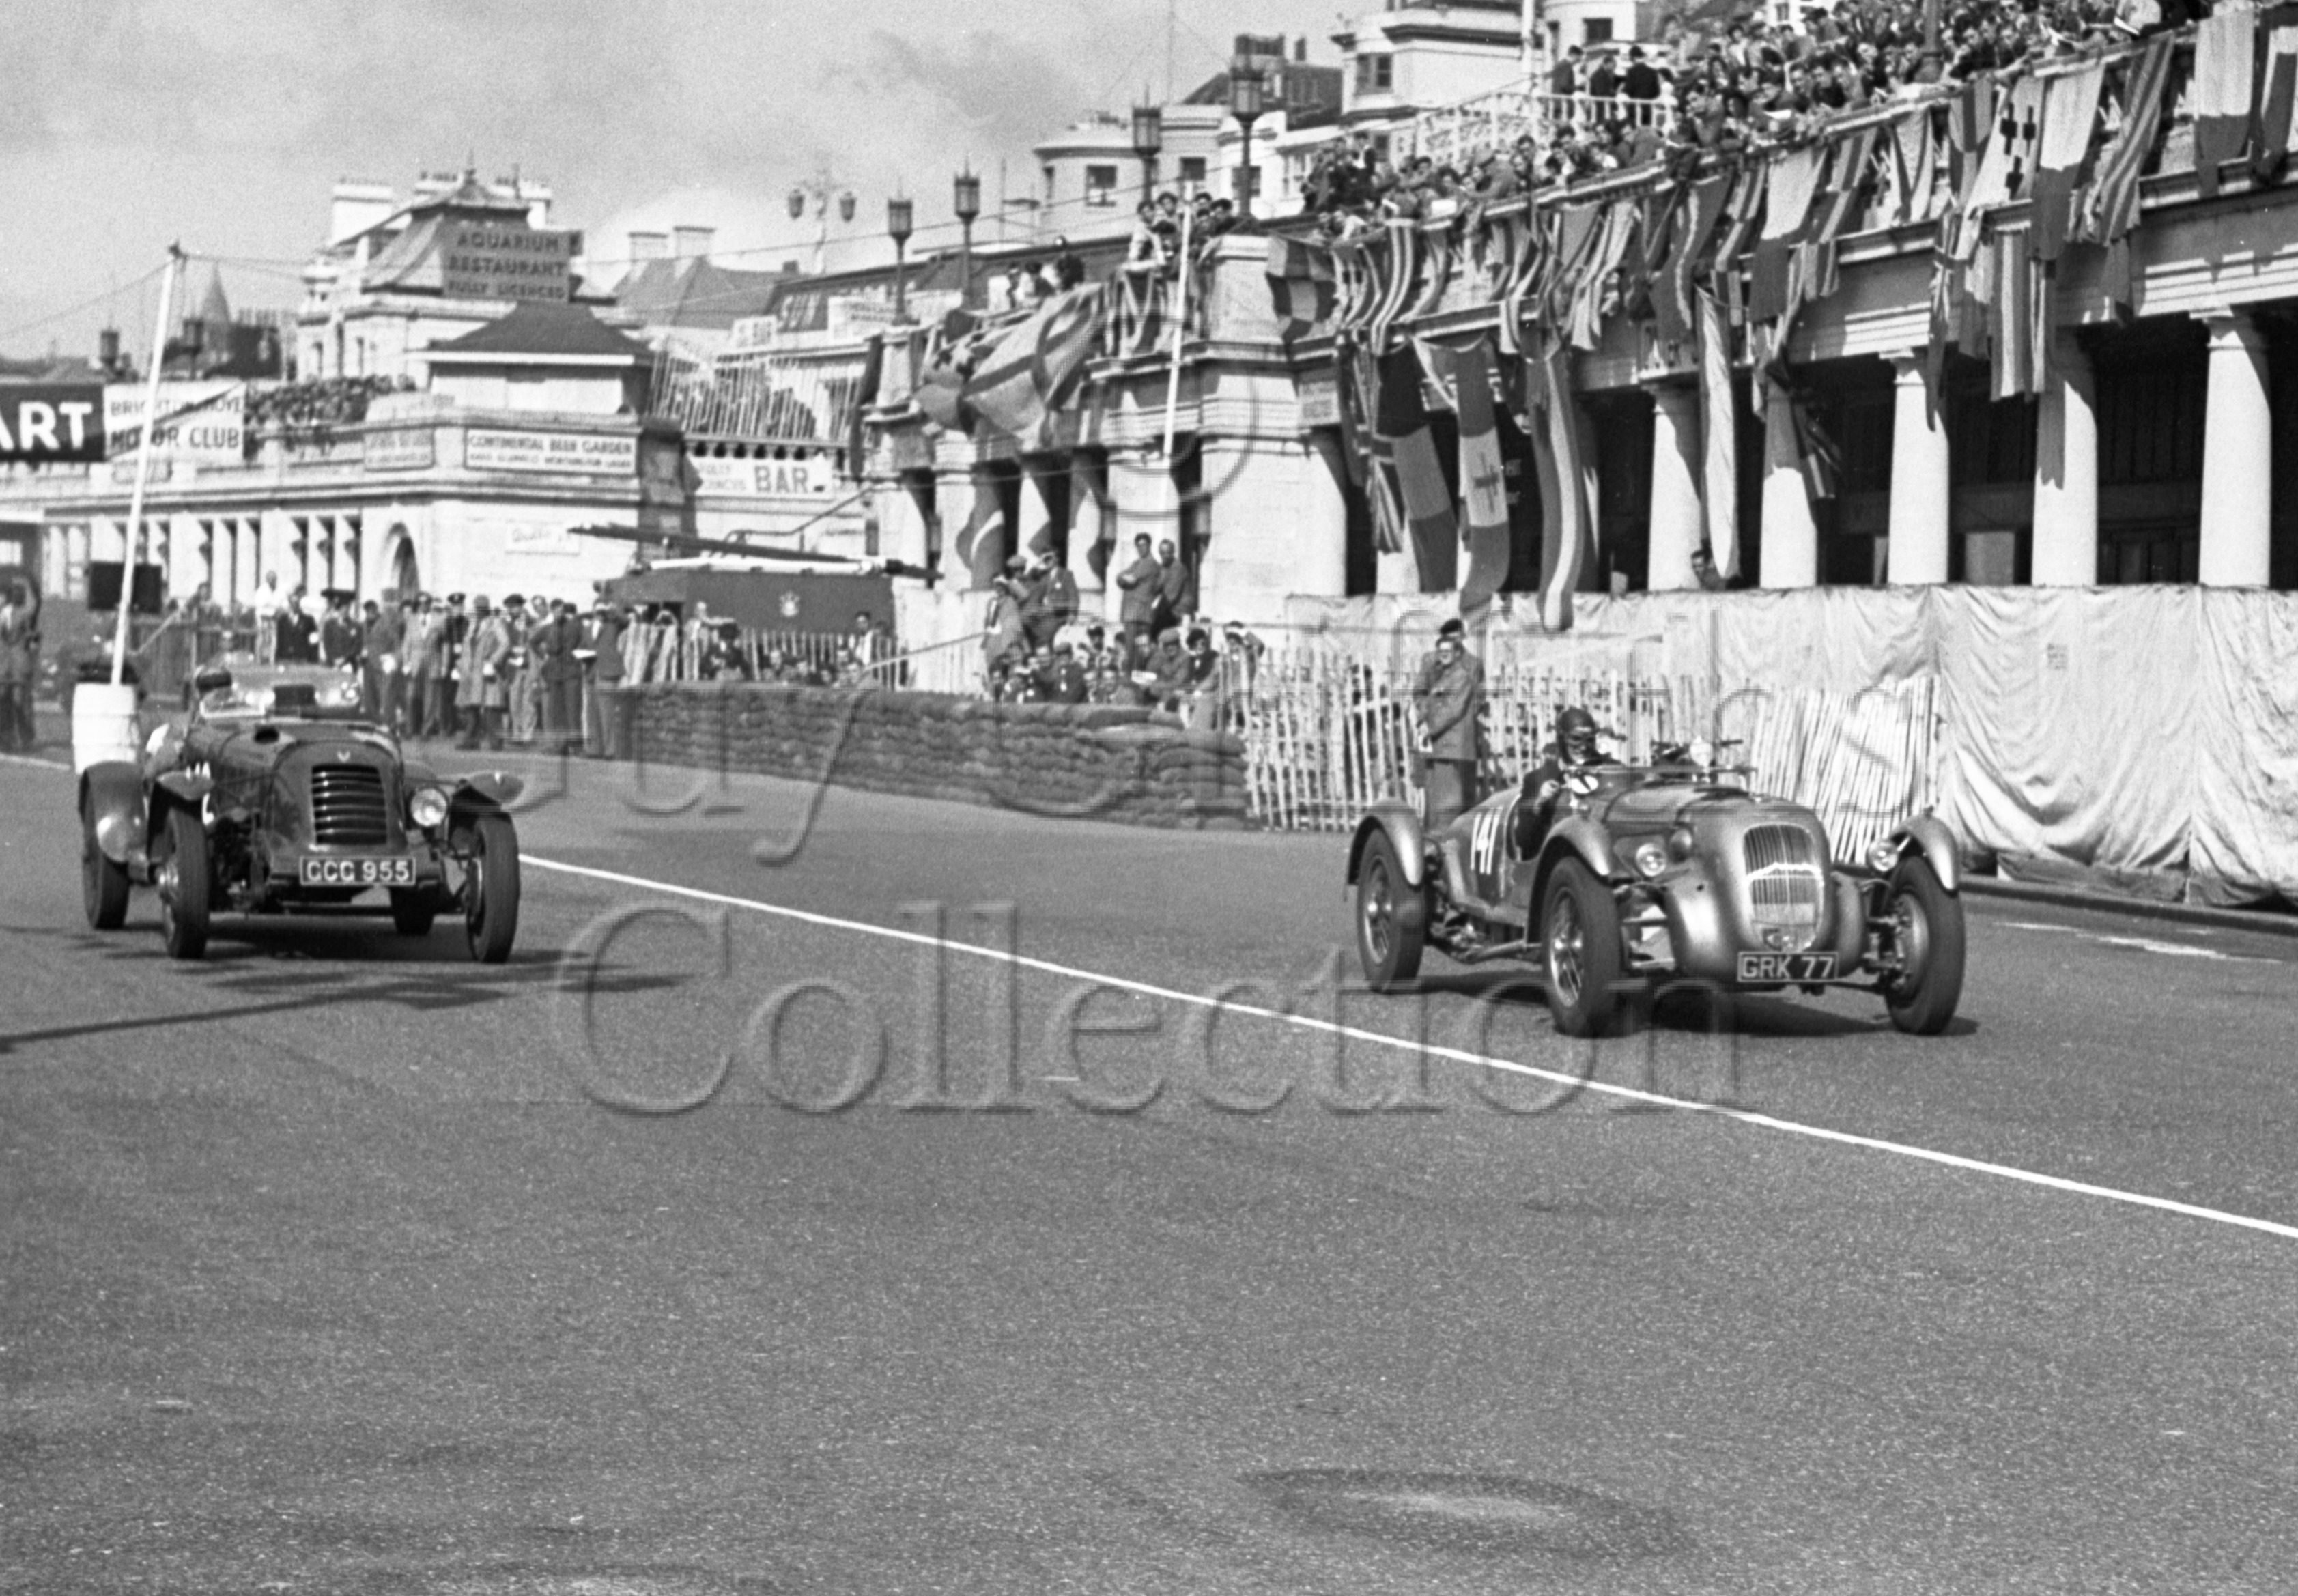 36-256–T-Crook–Lagonda–Brighton-02-09-1950.jpg - The Guy Griffiths Collection